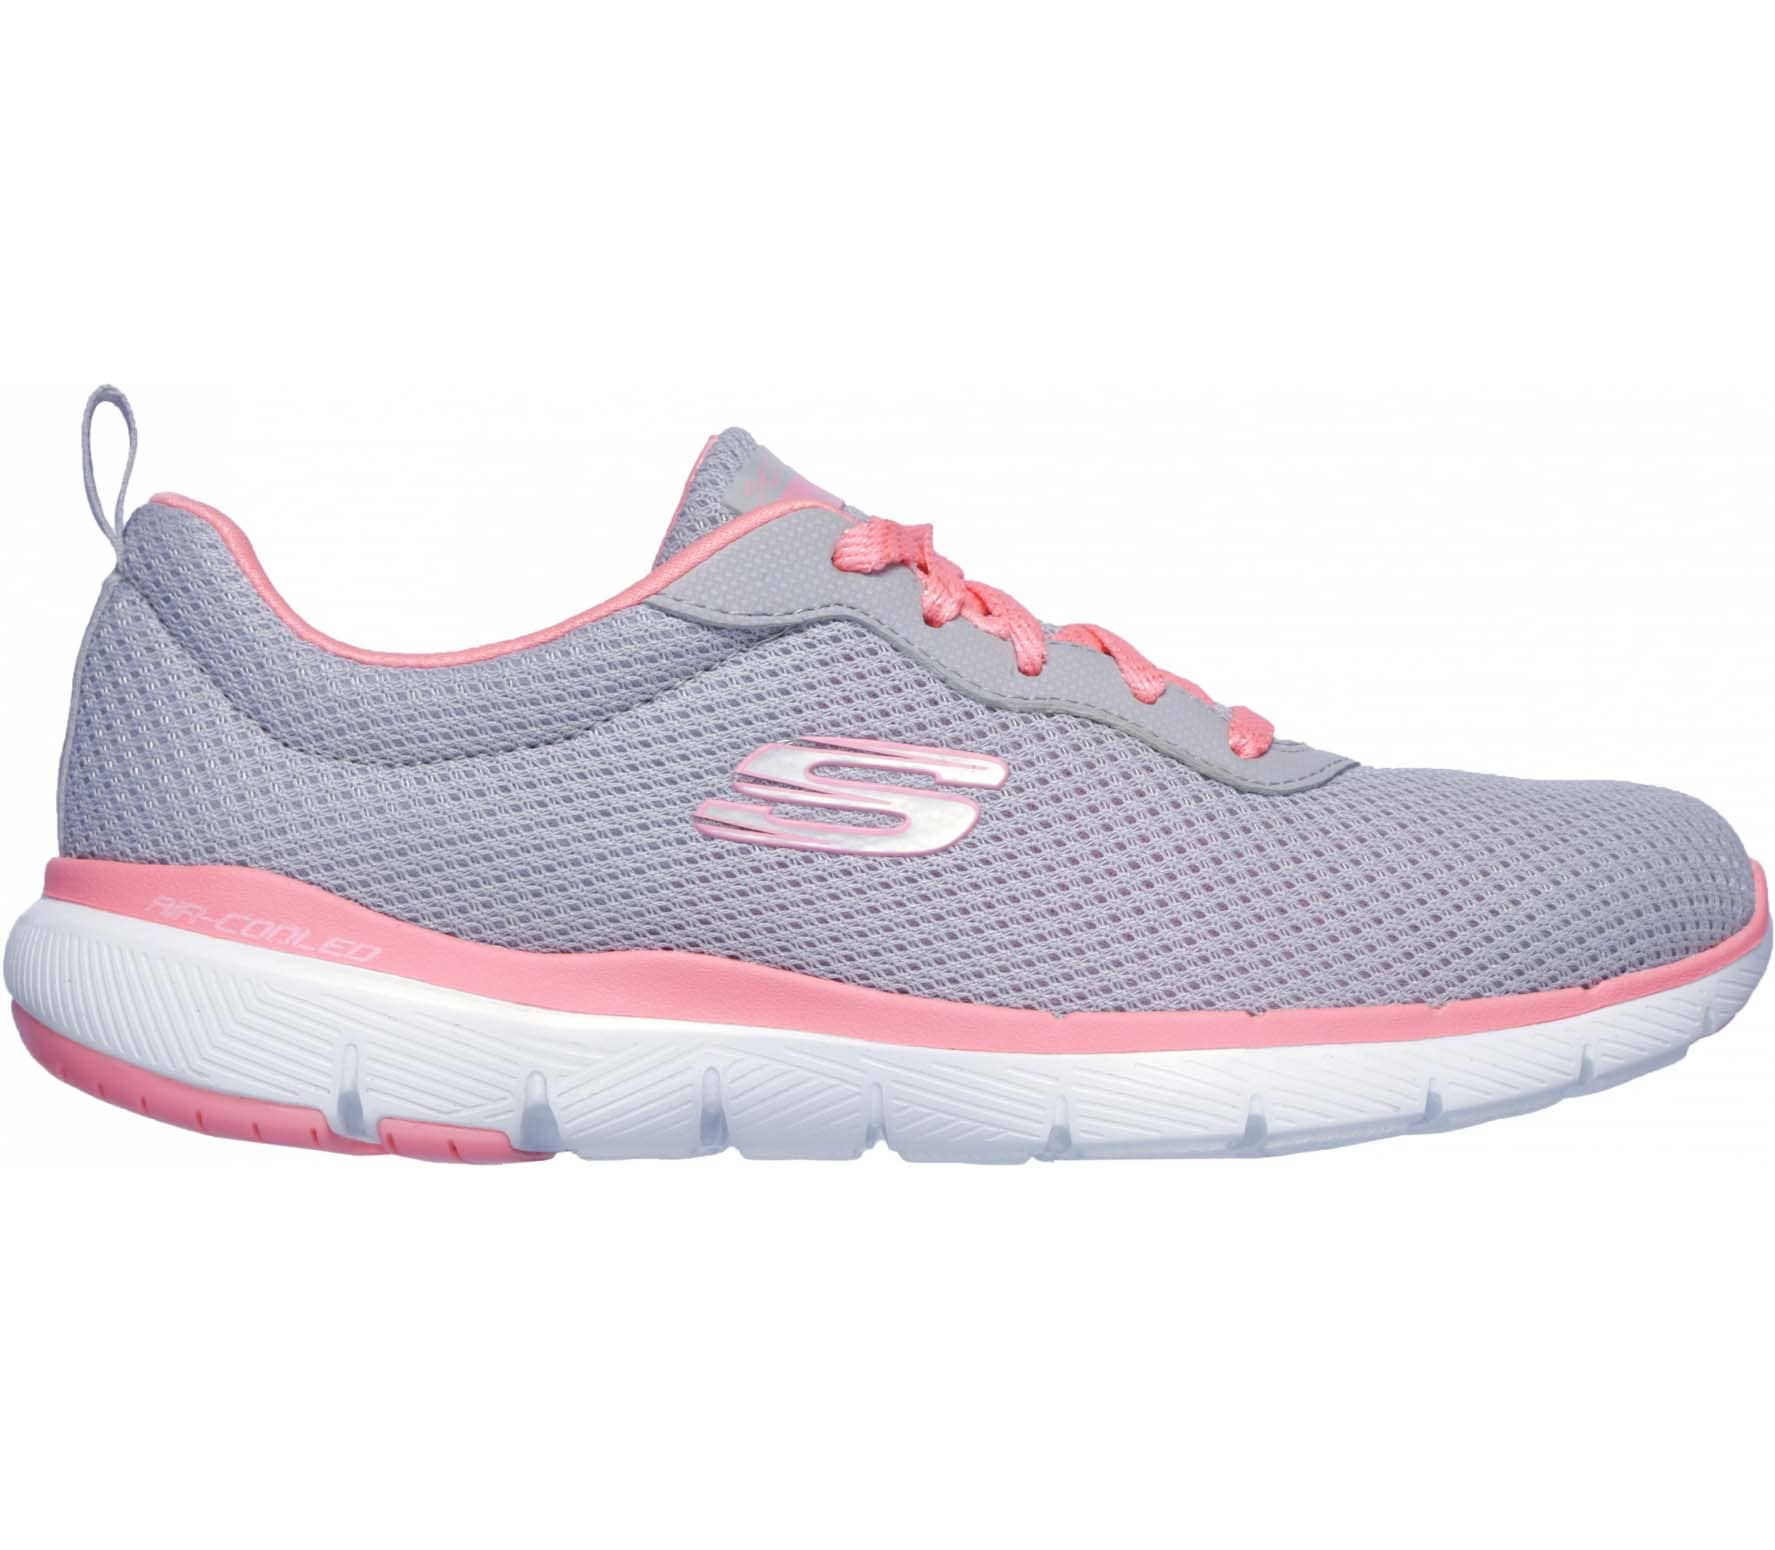 cc6eb709af8ea7 Skechers - Flex Appeal 3.0 women's training shoes (grey) - buy it at ...